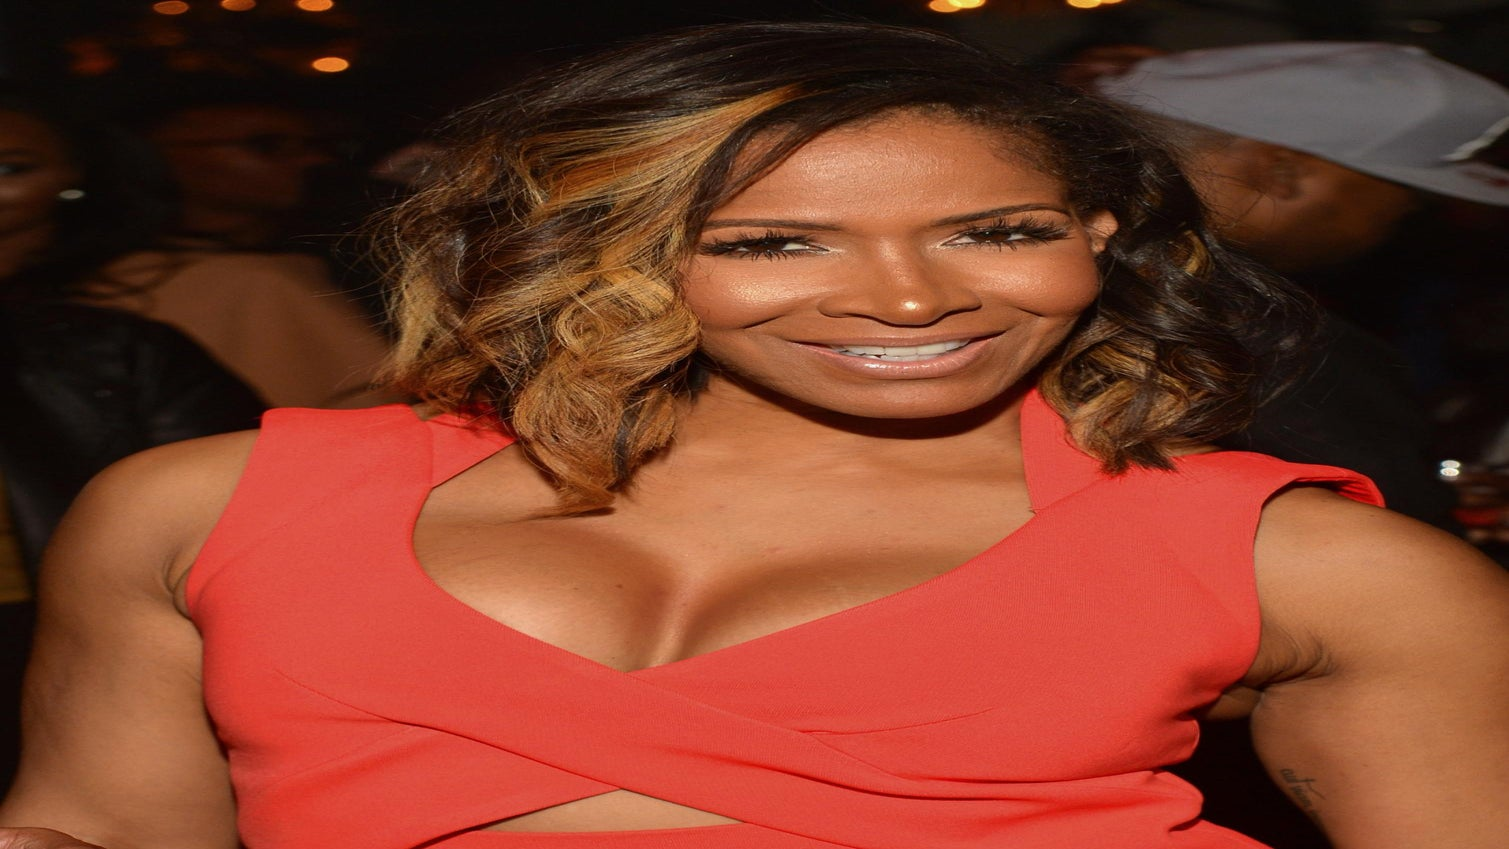 RHOA Star Sheree Whitfield Opens Up About Boyfriend Being Behind Bars And How They Met